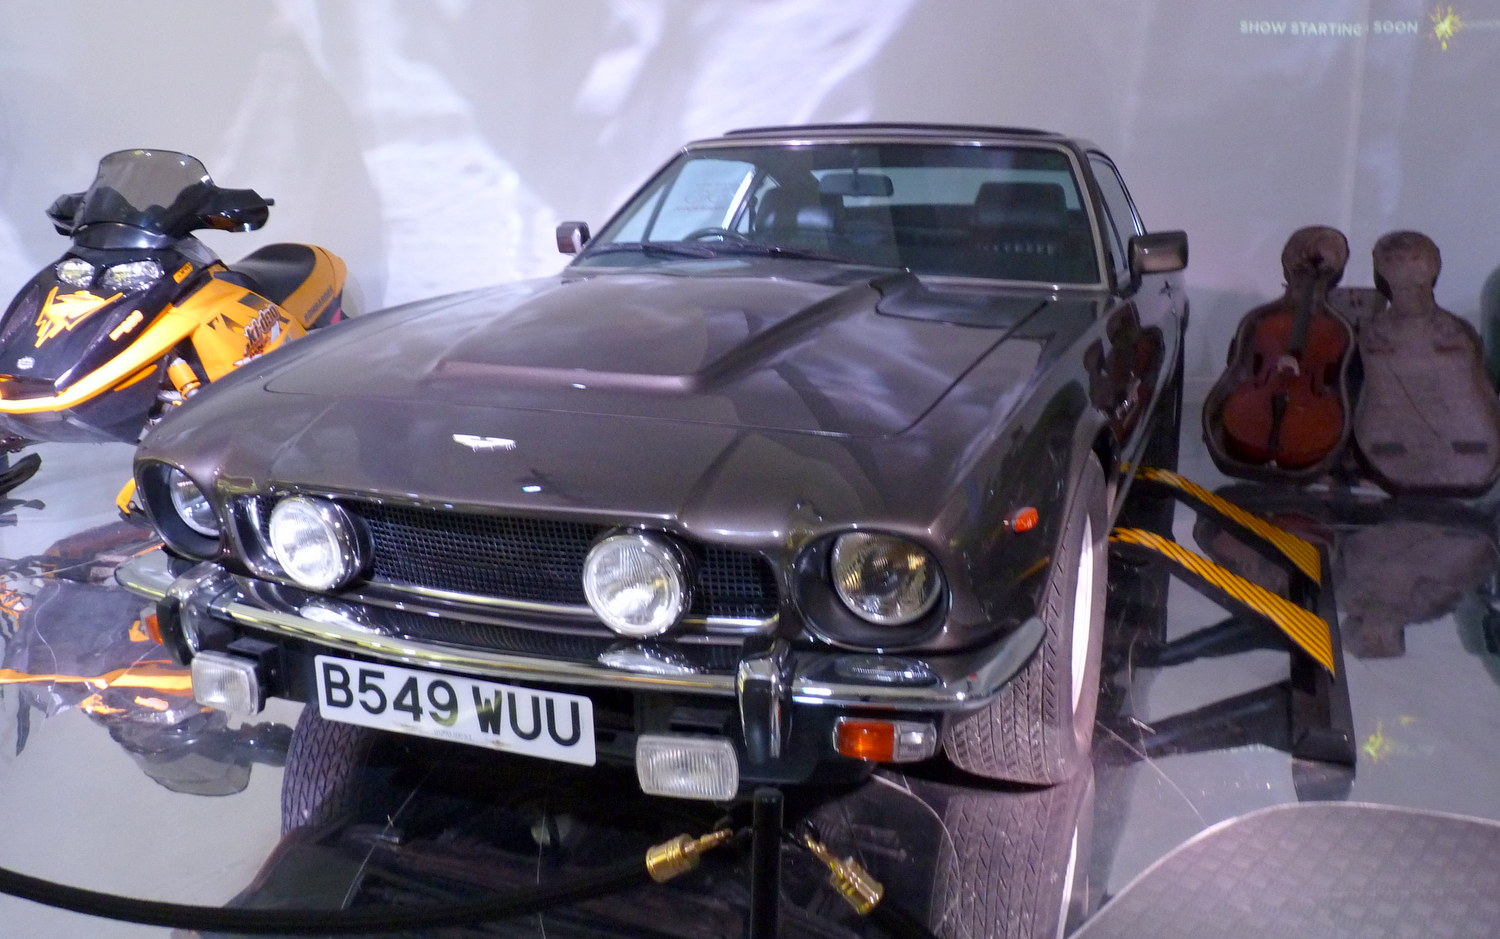 50 Years Of Bond Cars At Beaulieu Big Picture Gallery